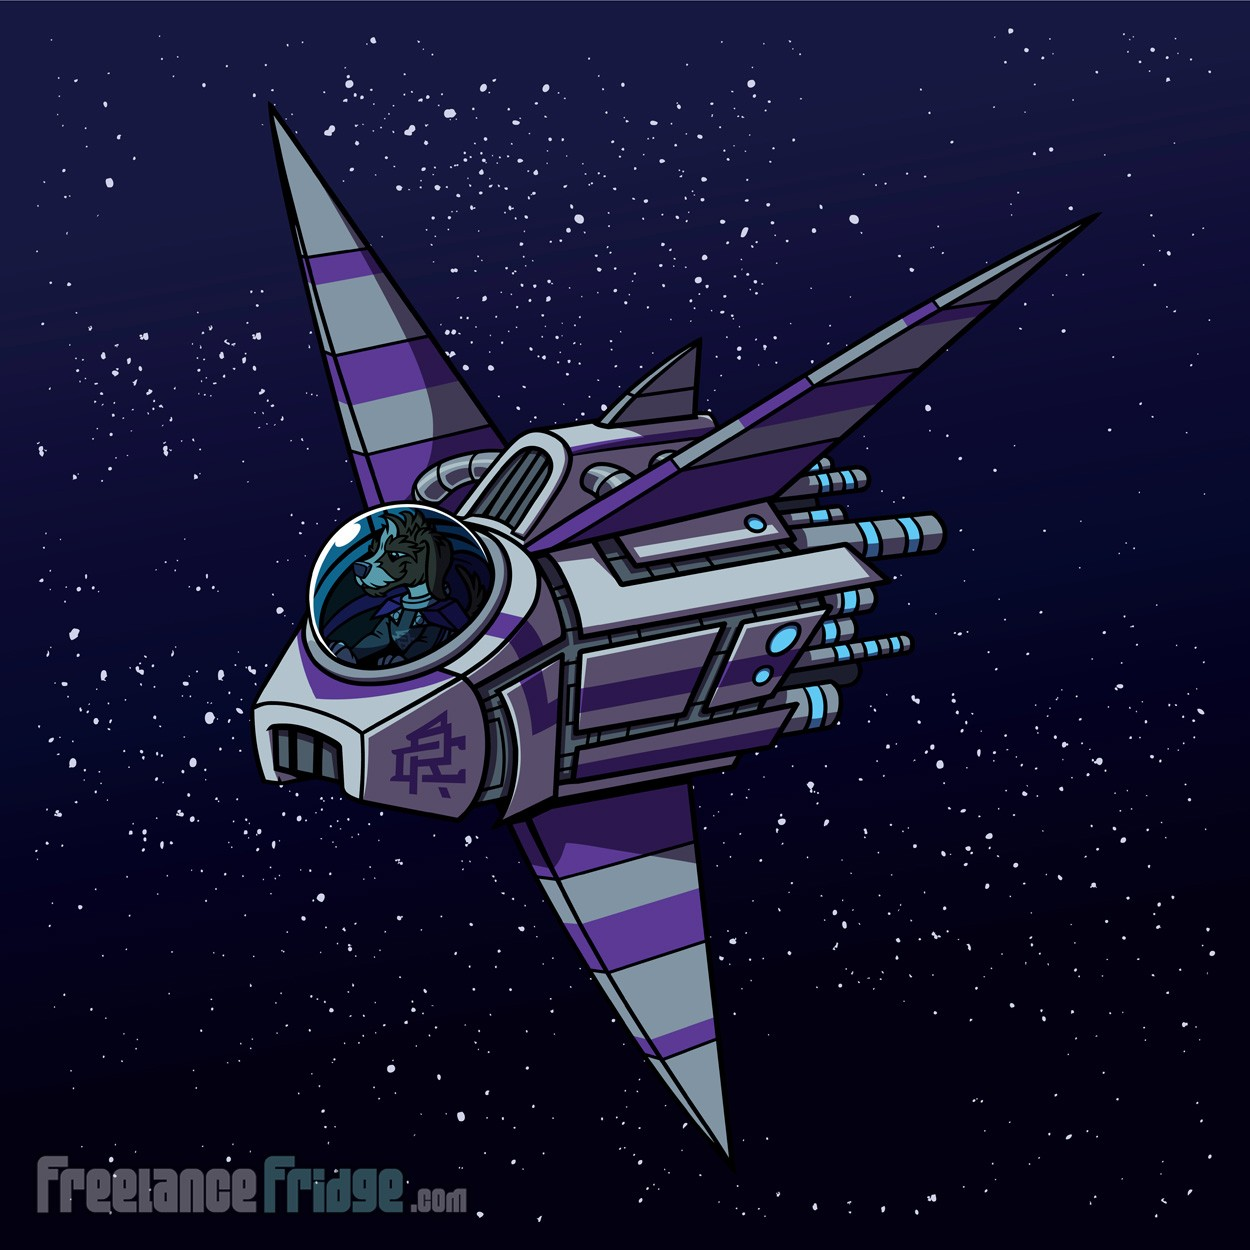 Scifi Librarian Dogs Spaceship vehicle final vehicle artwork illustration